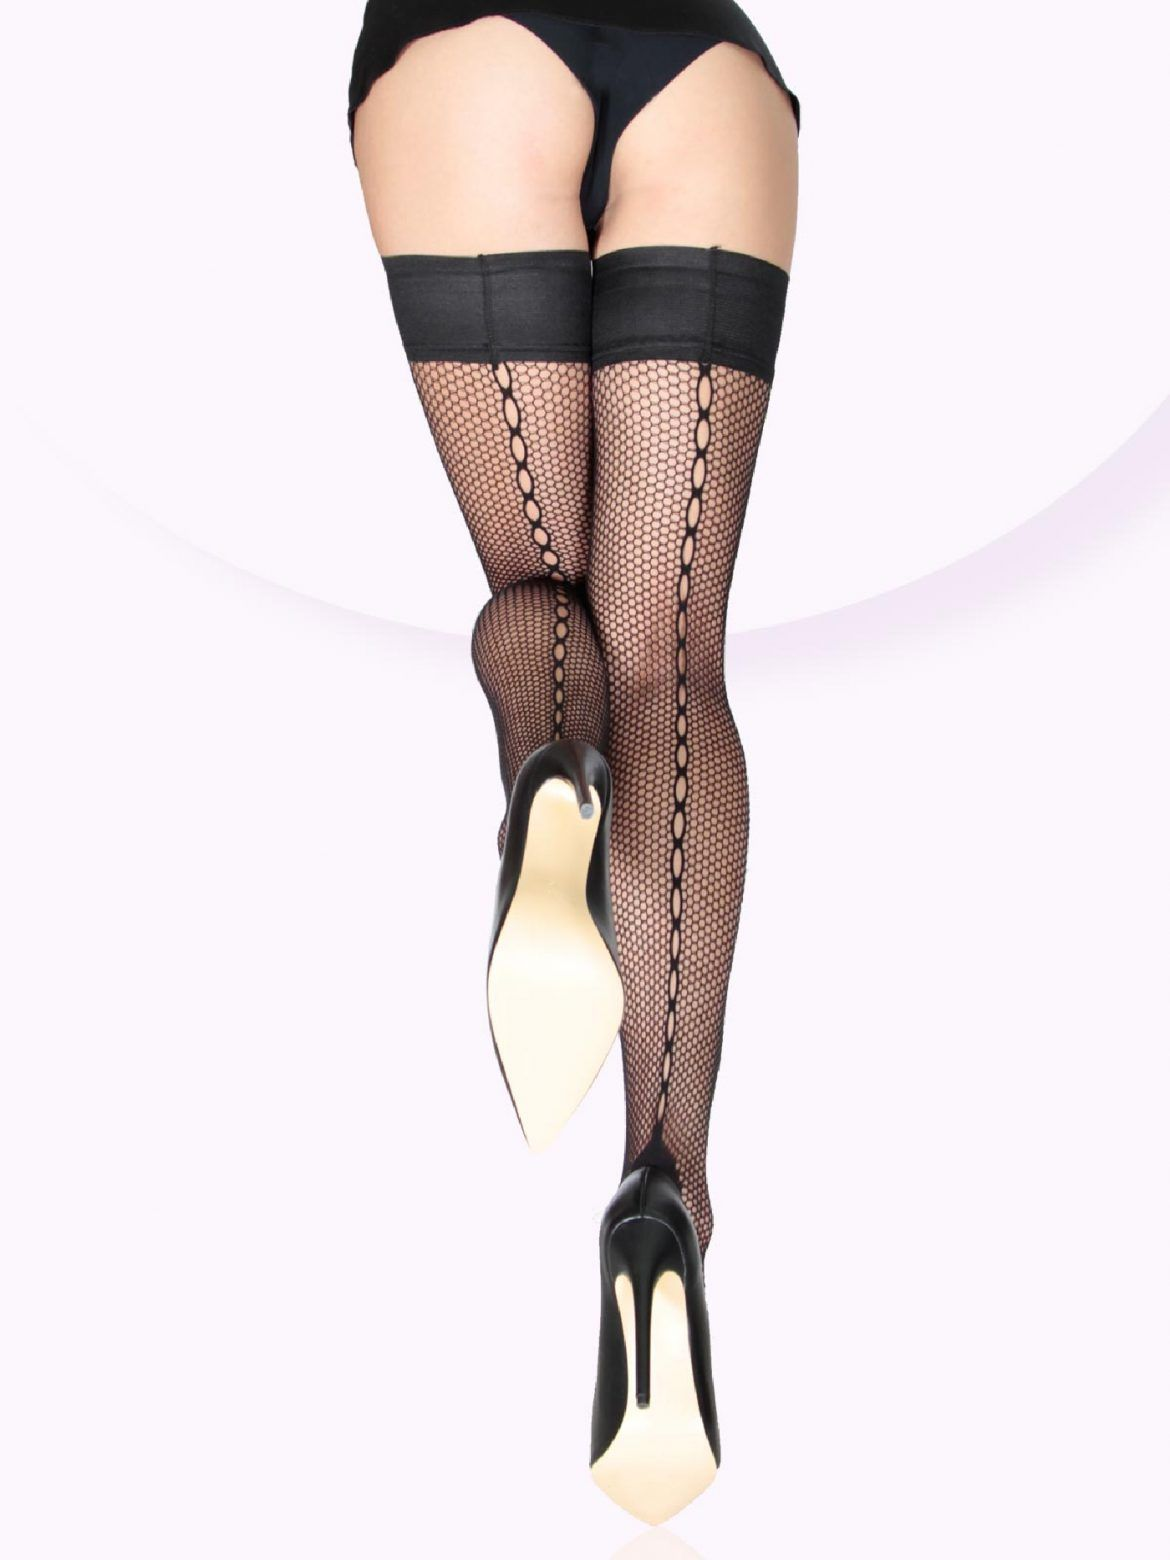 89ce2fc20 VienneMilano  Luxury Italian Hold-Ups at an Affordable Price